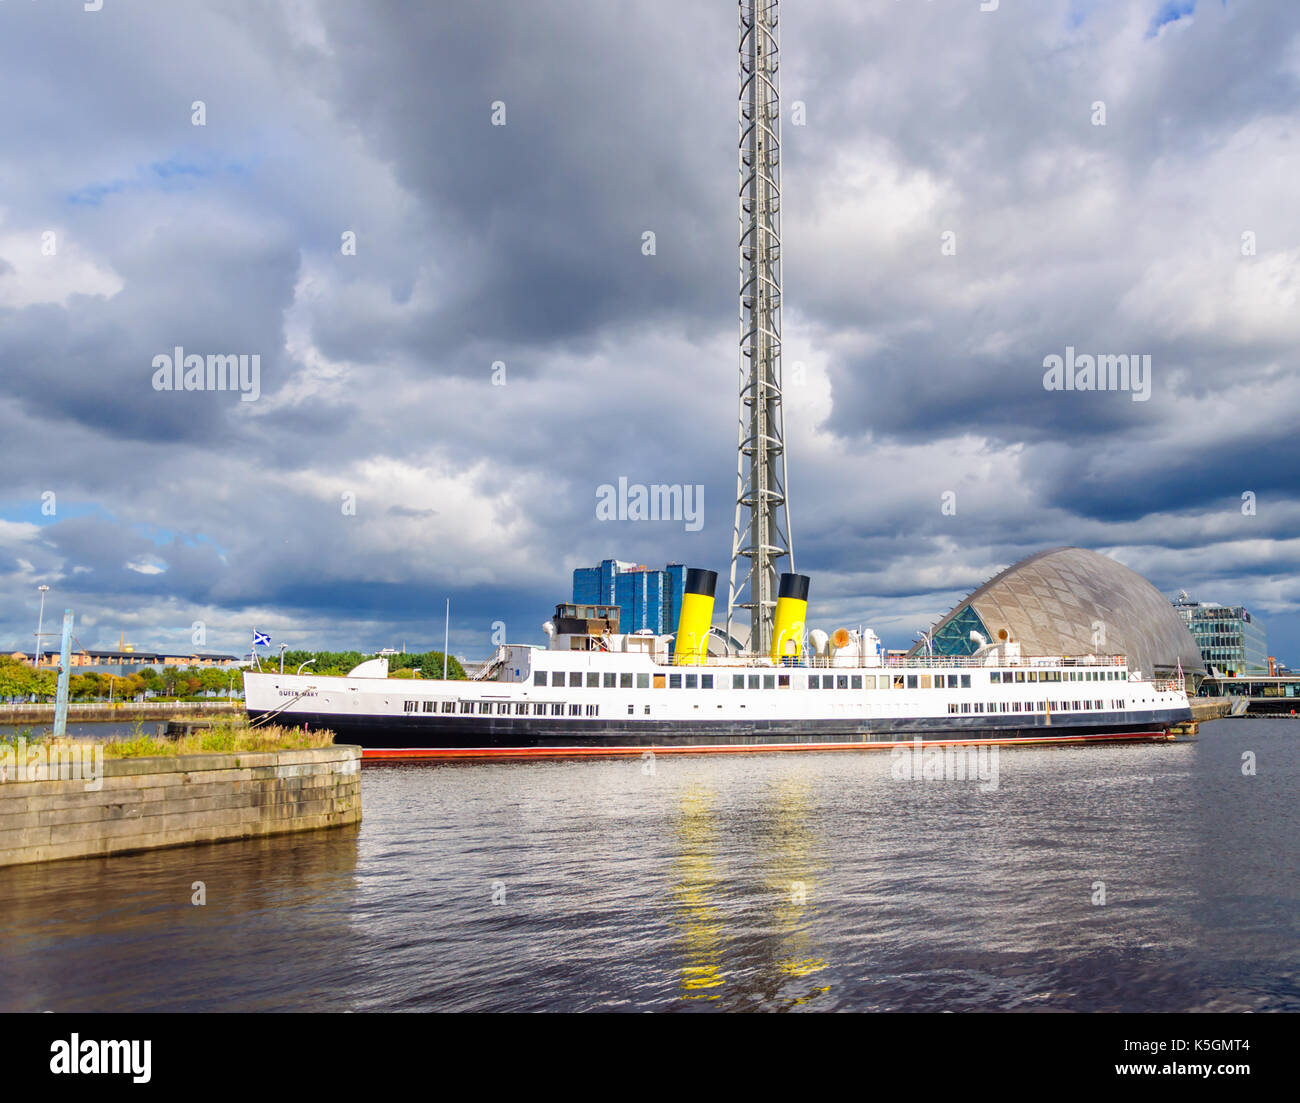 maritime and science museum stock photos  u0026 maritime and